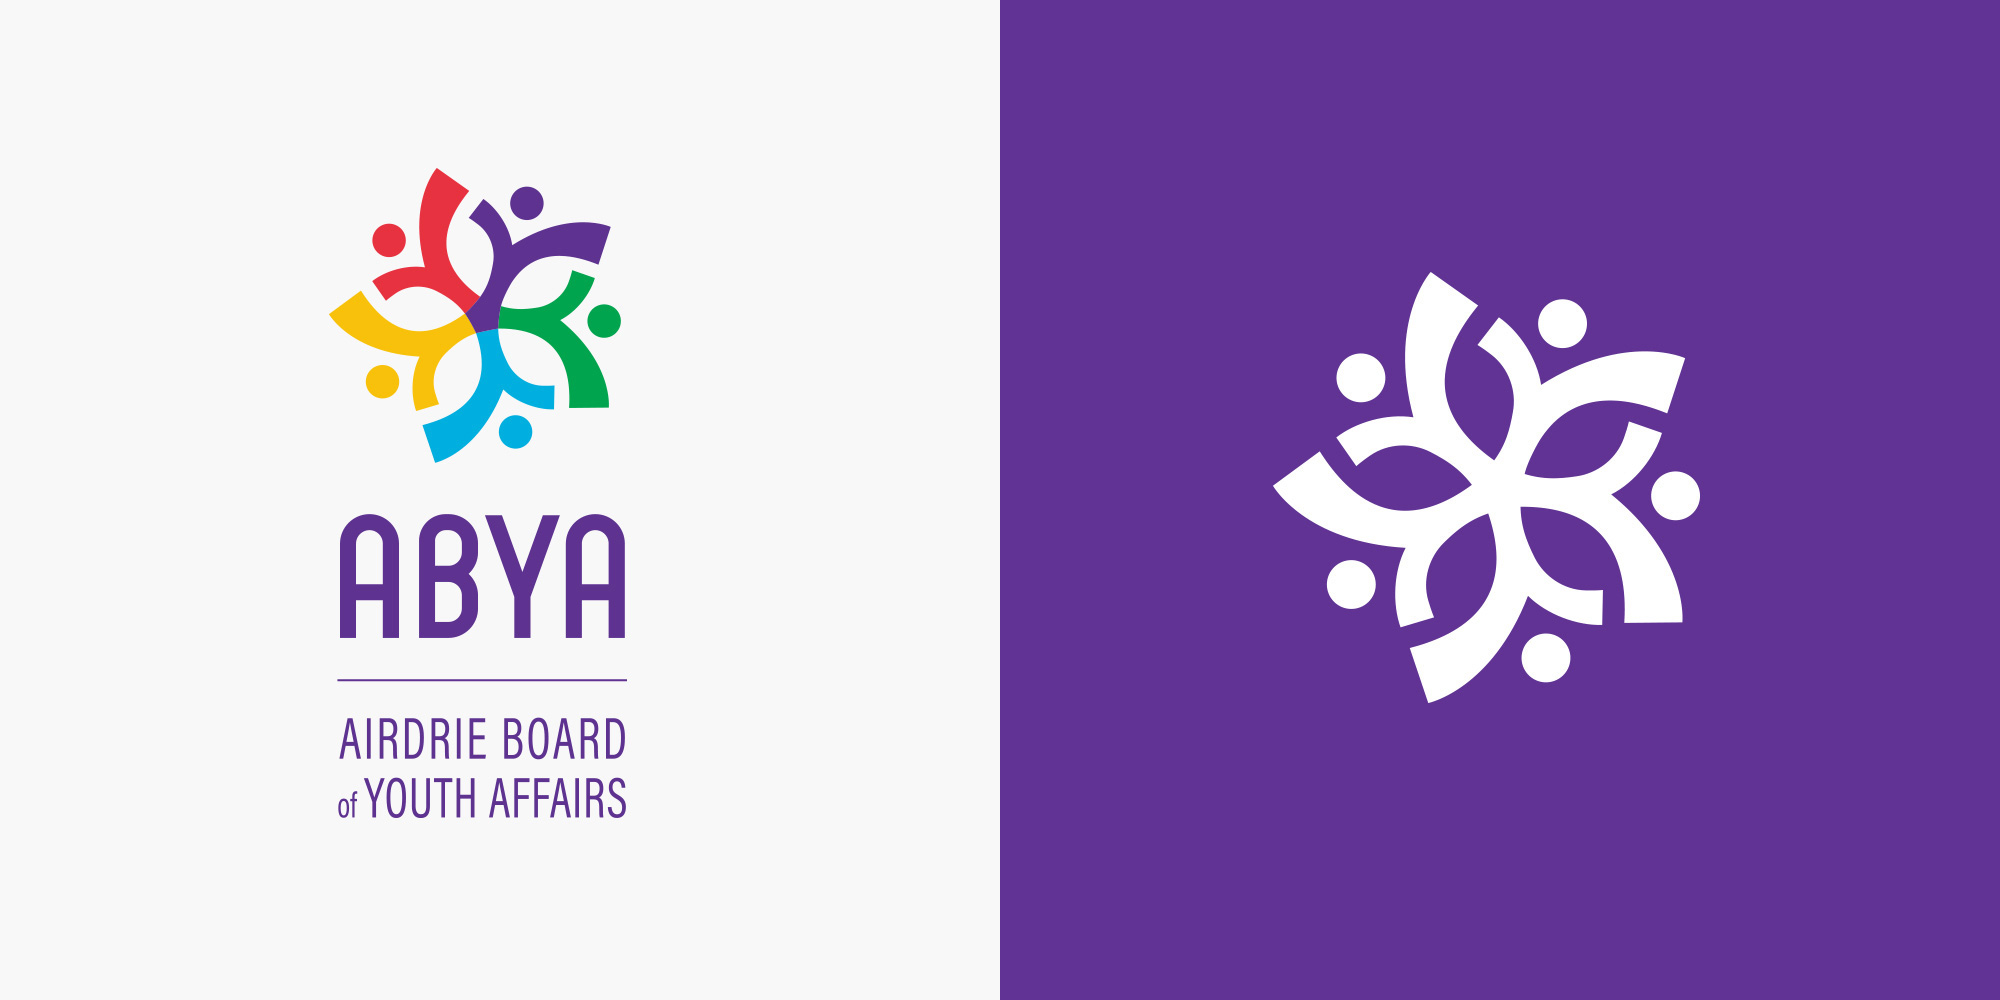 ABYA vertical logo design and icon on purple background